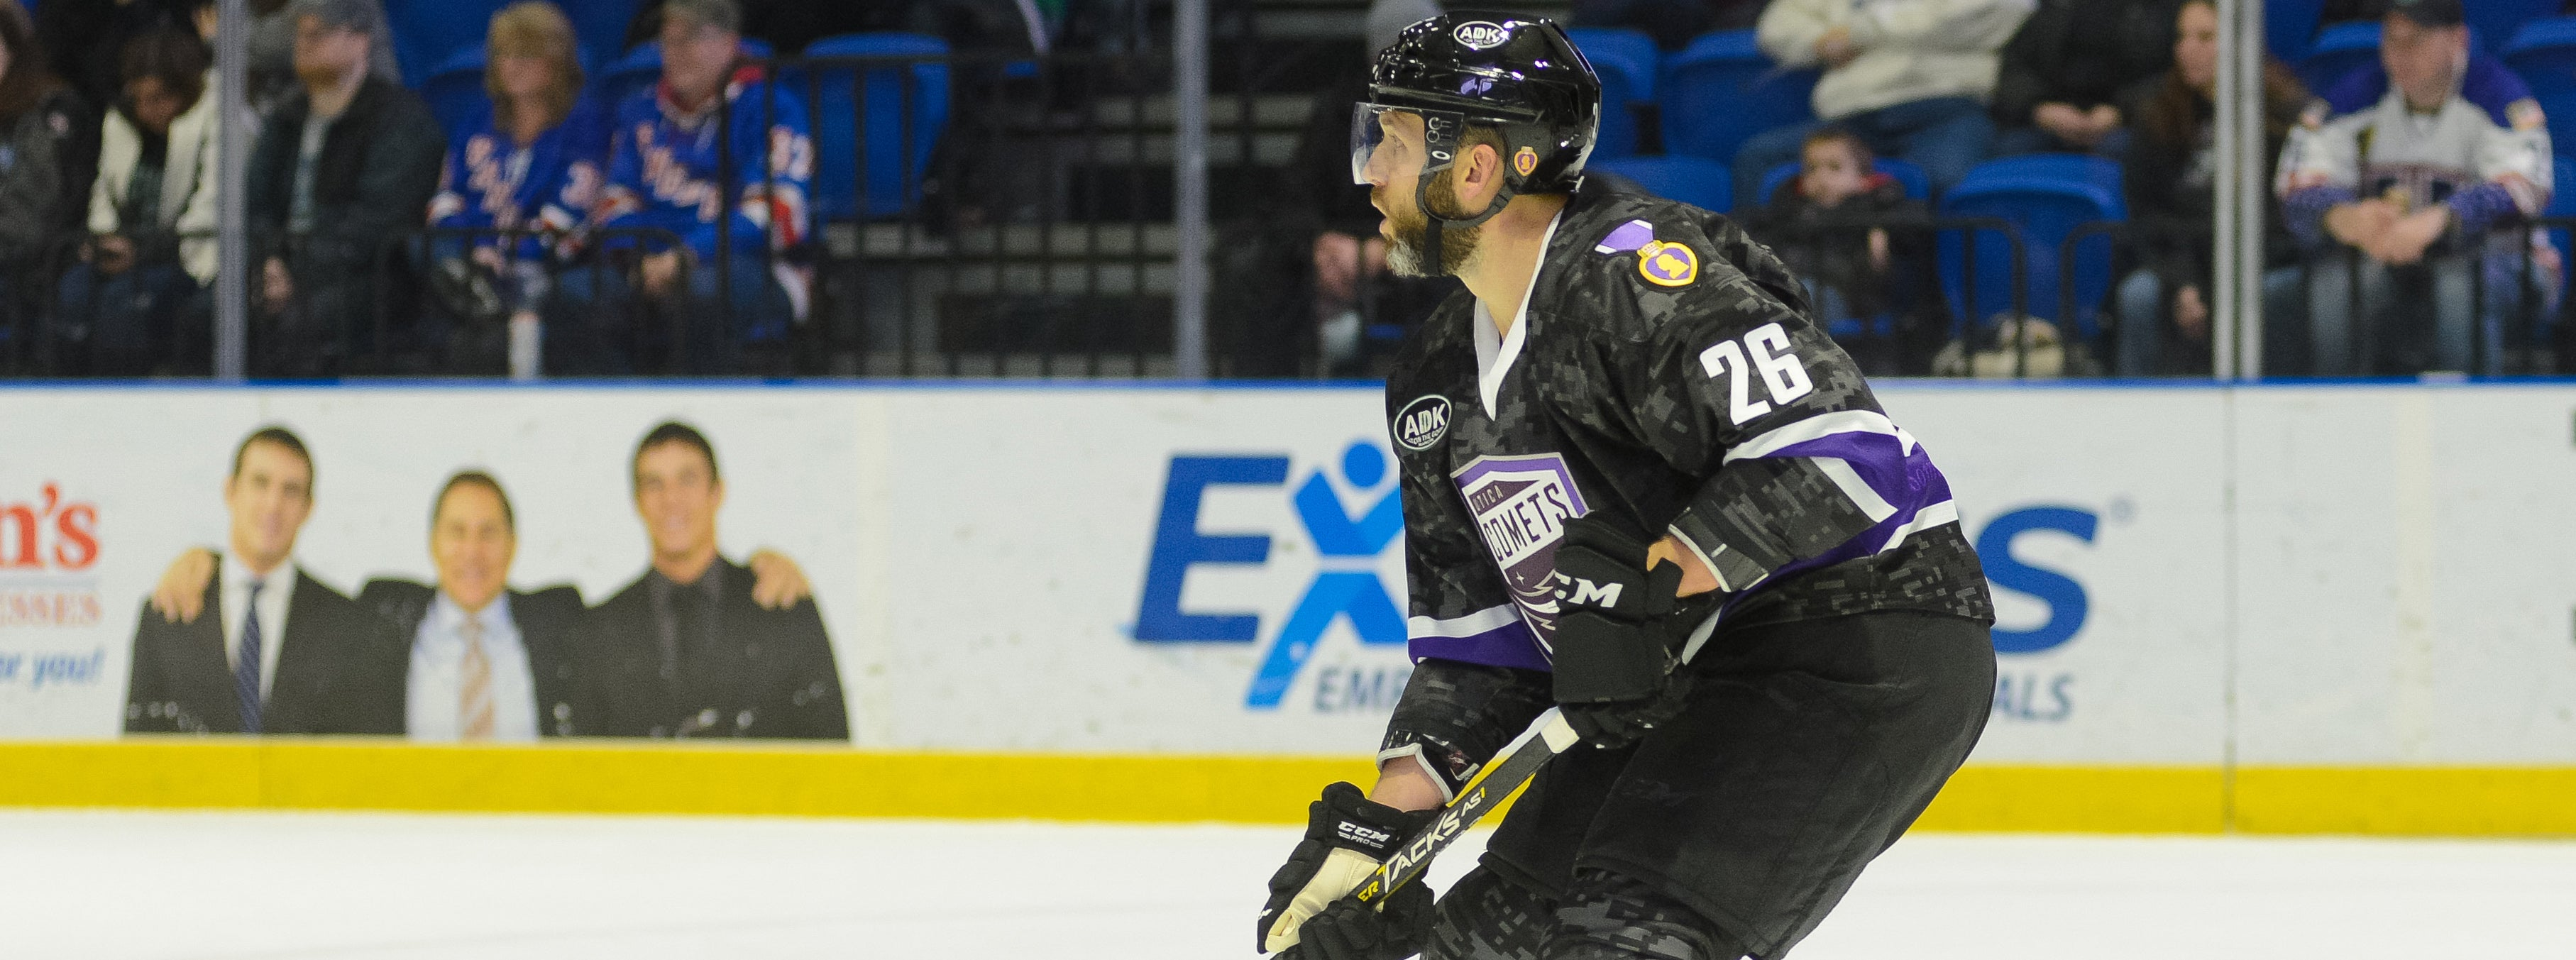 SIFERS TO PLAY FINAL GAME SUNDAY